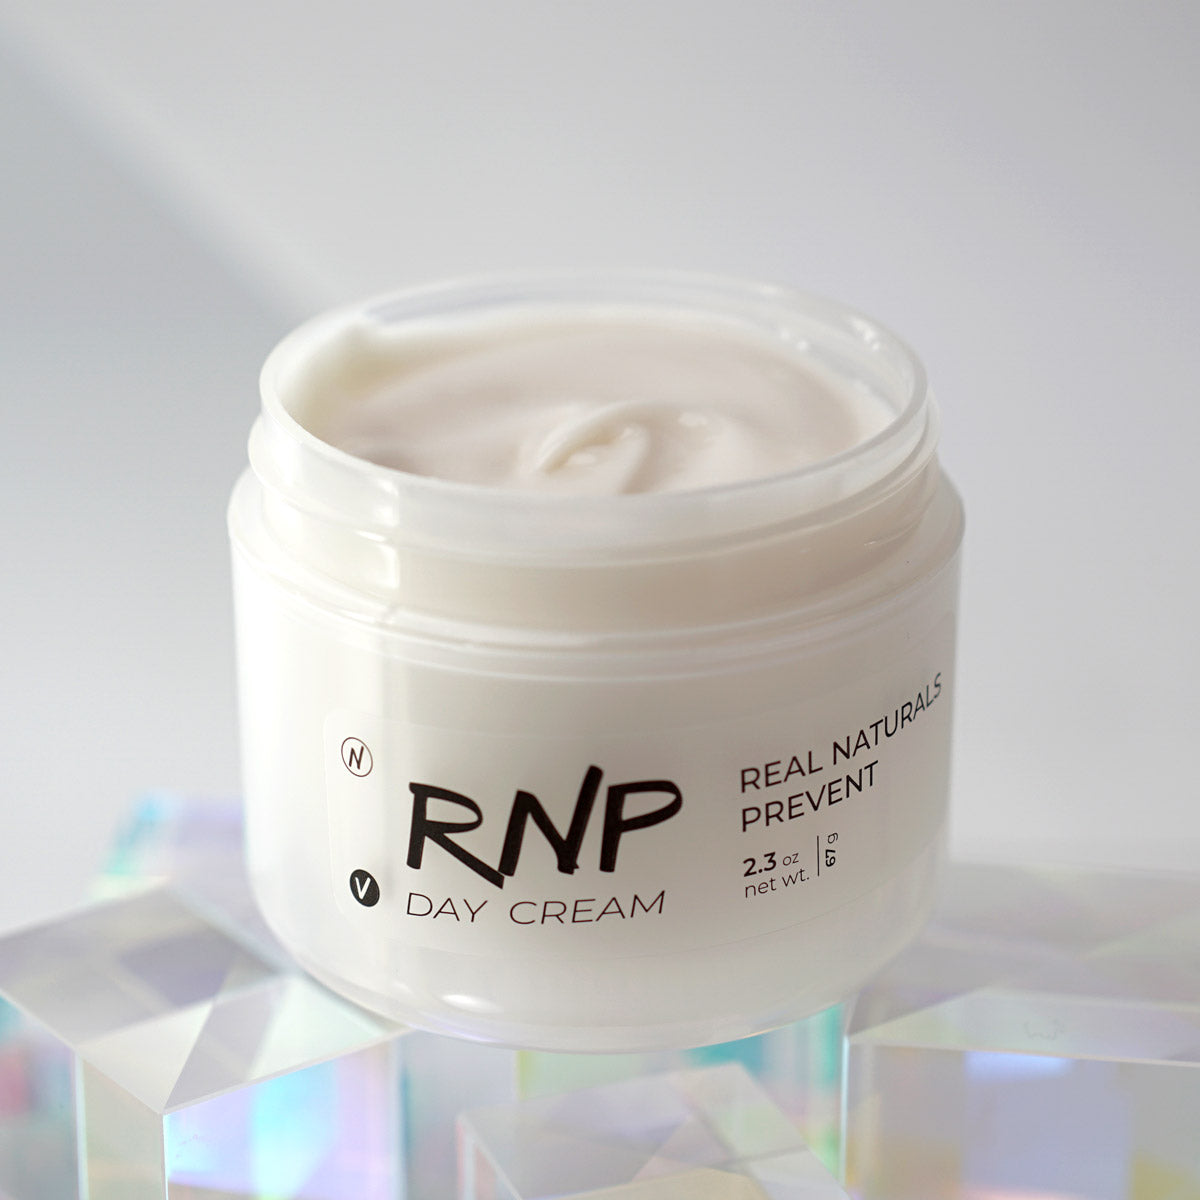 Daily Routine Bundle - Real Naturals (Repair, Prevent, Cleanse) + Mint to be Lip Treatment